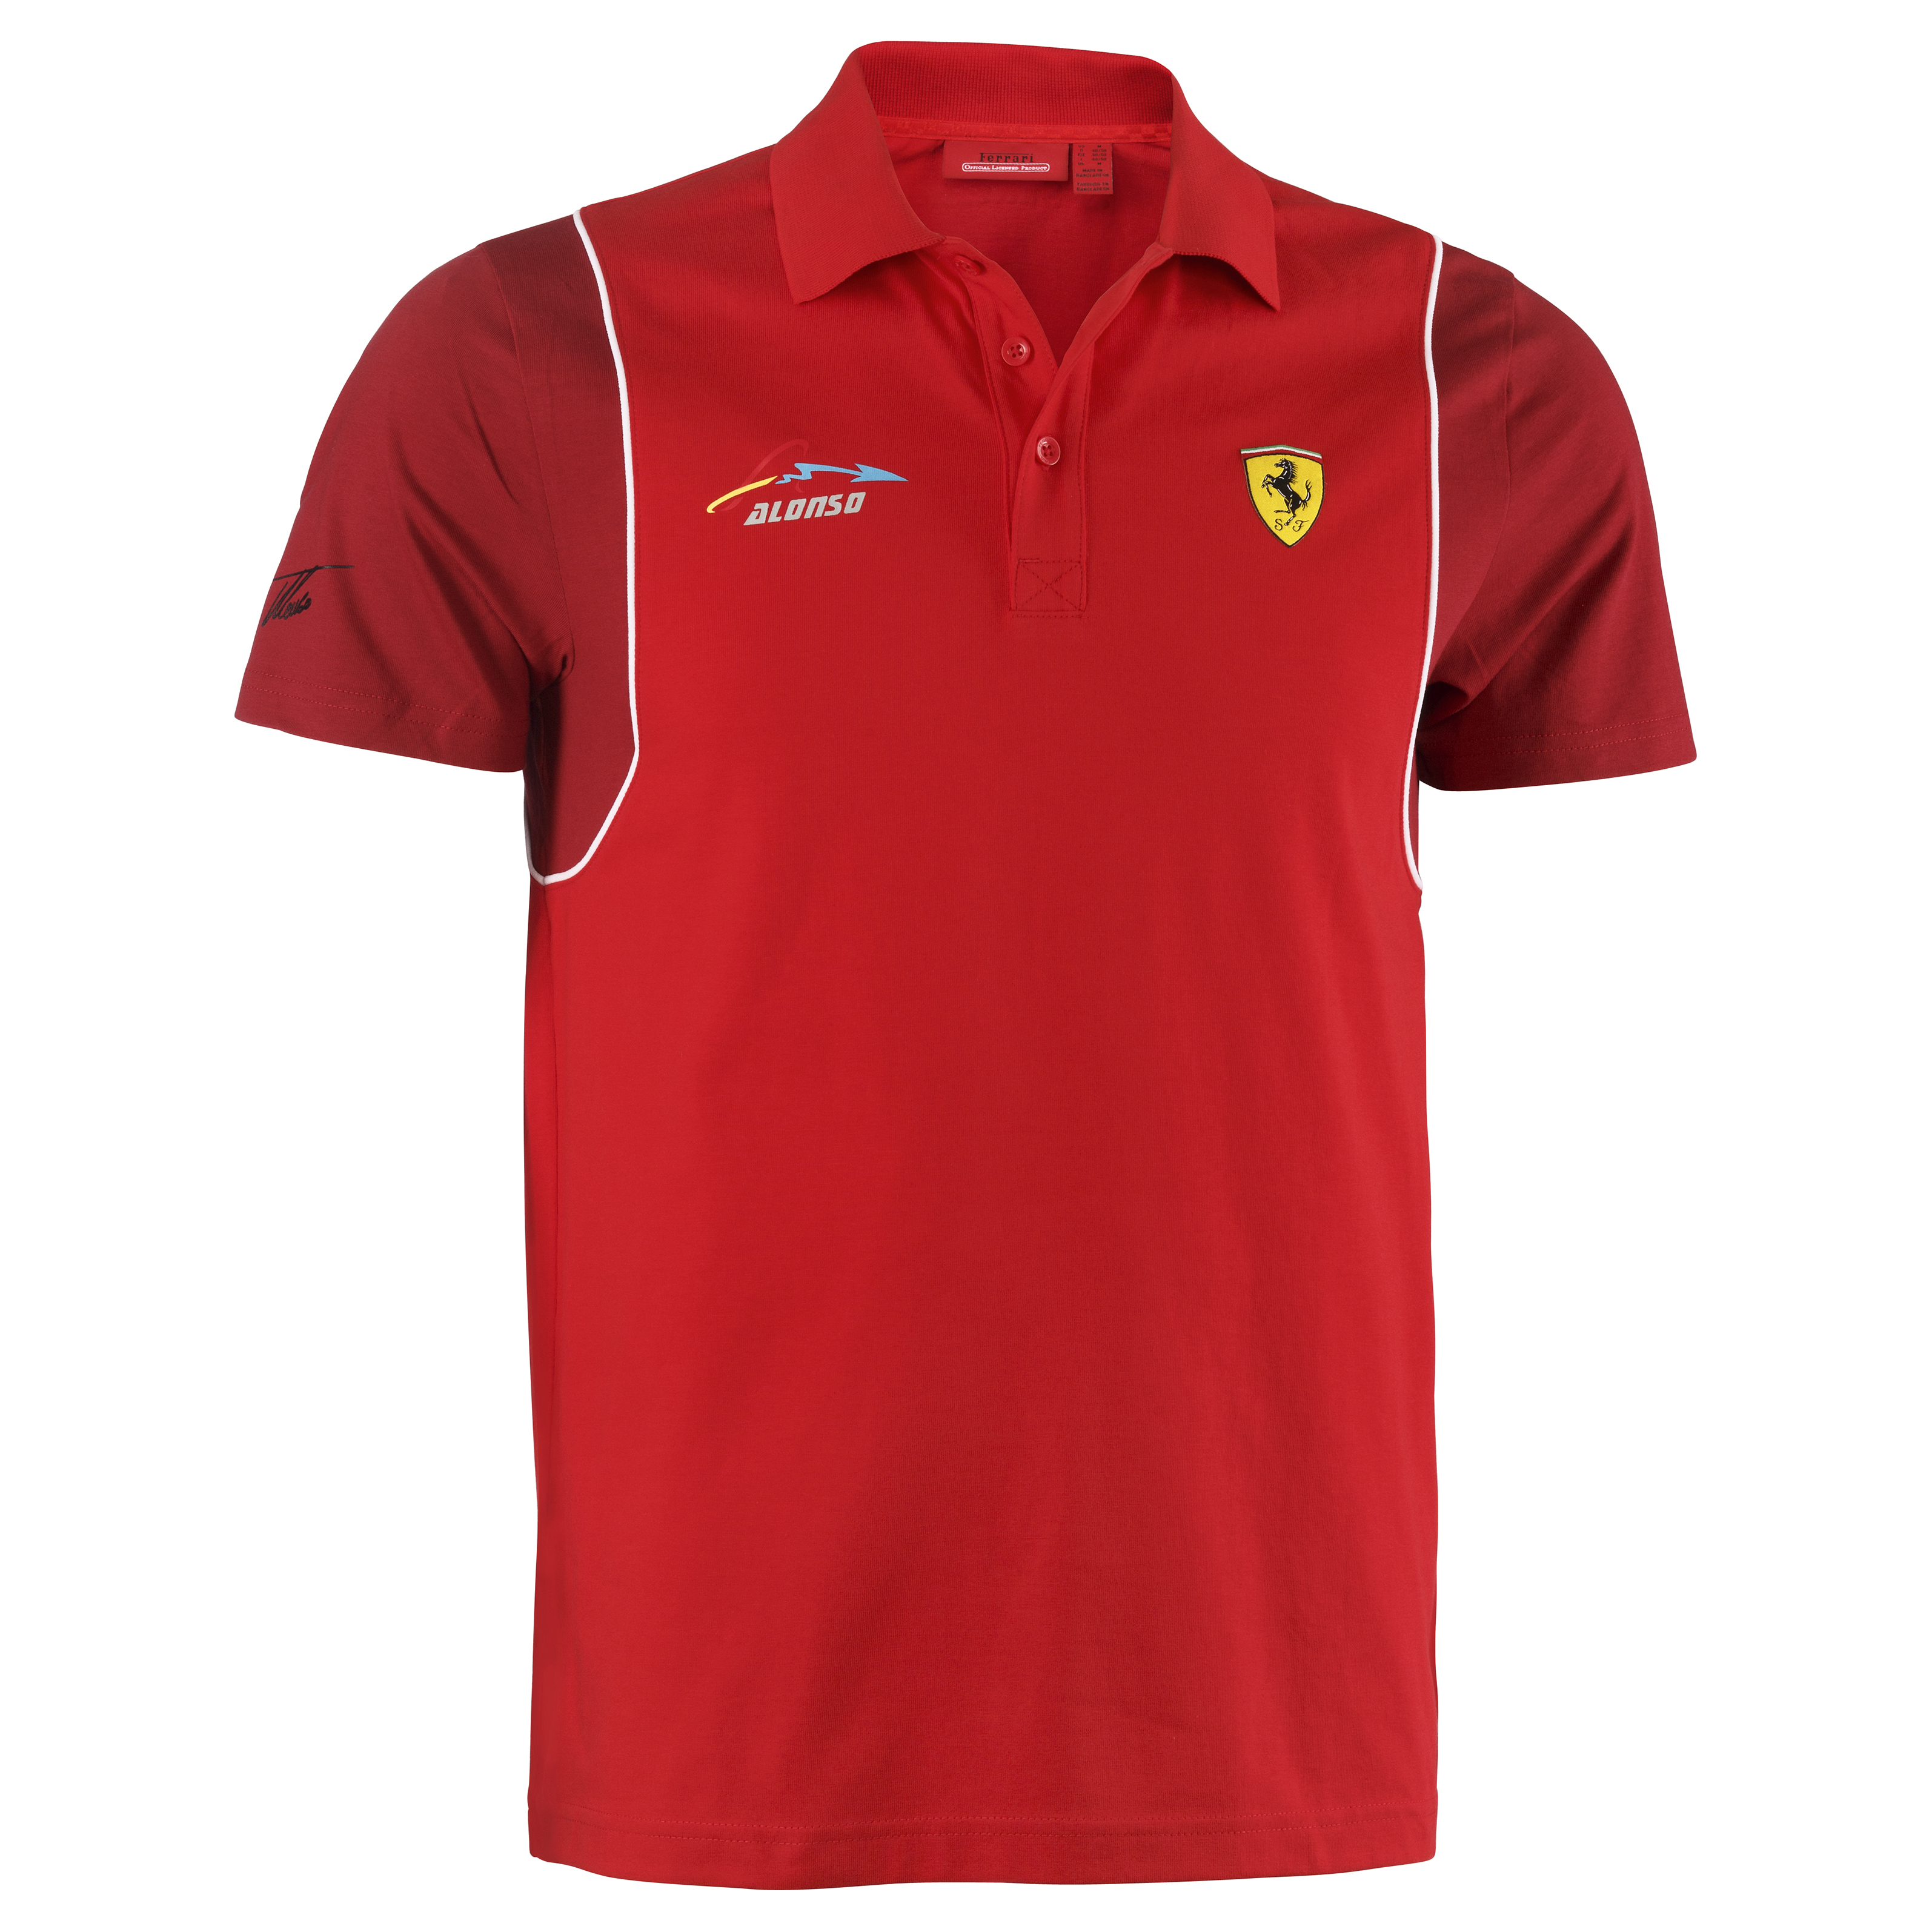 Scuderia Ferrari Scuderia Alonso Polo - Red